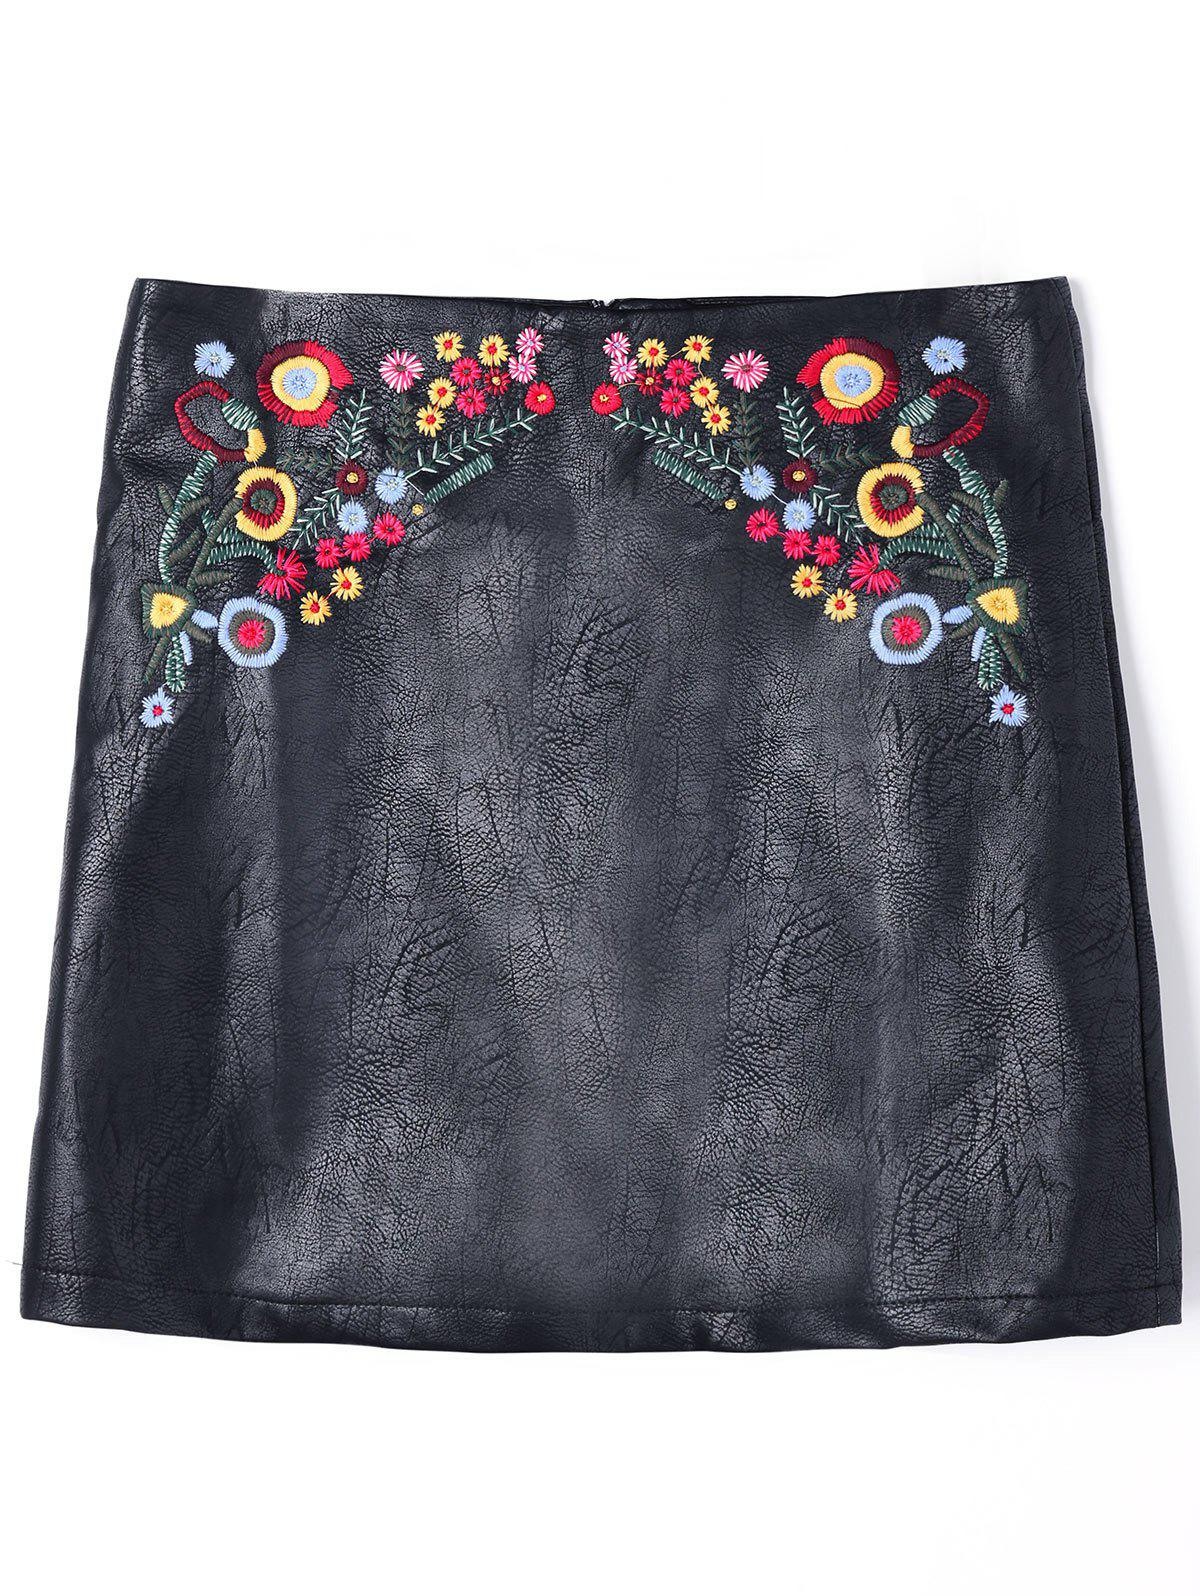 Floral Embroidered PU Leather Skirt - BLACK M